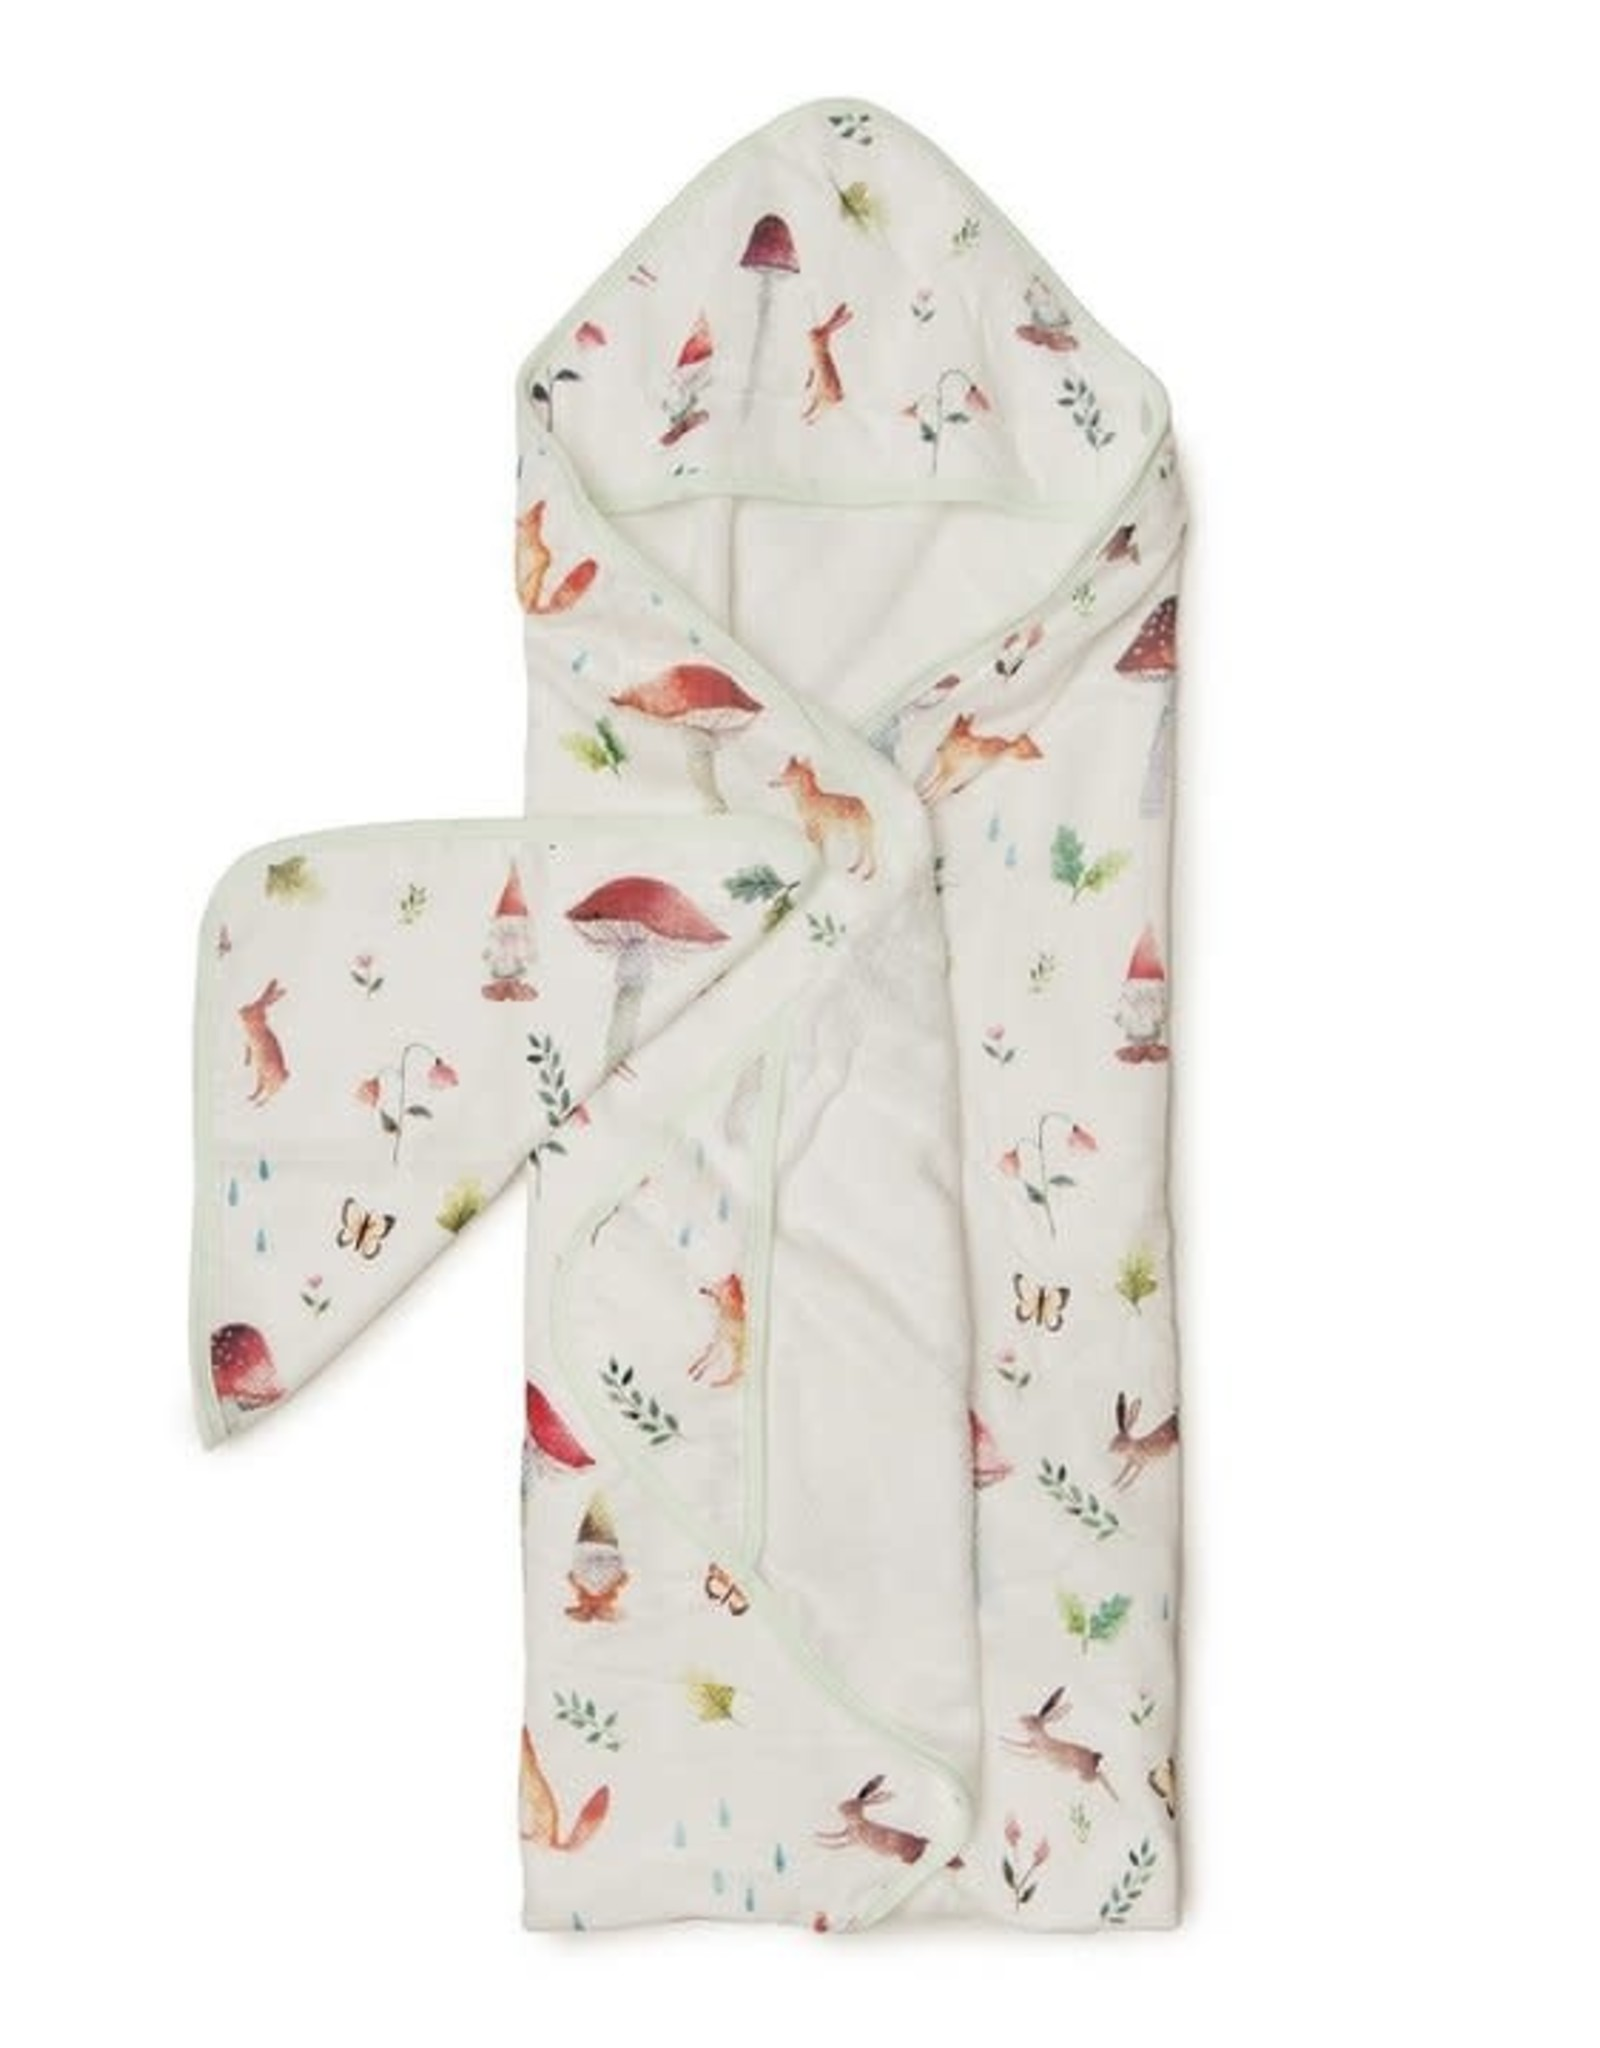 Loulou Lollipop Hooded Towel Set - Woodland Gnome